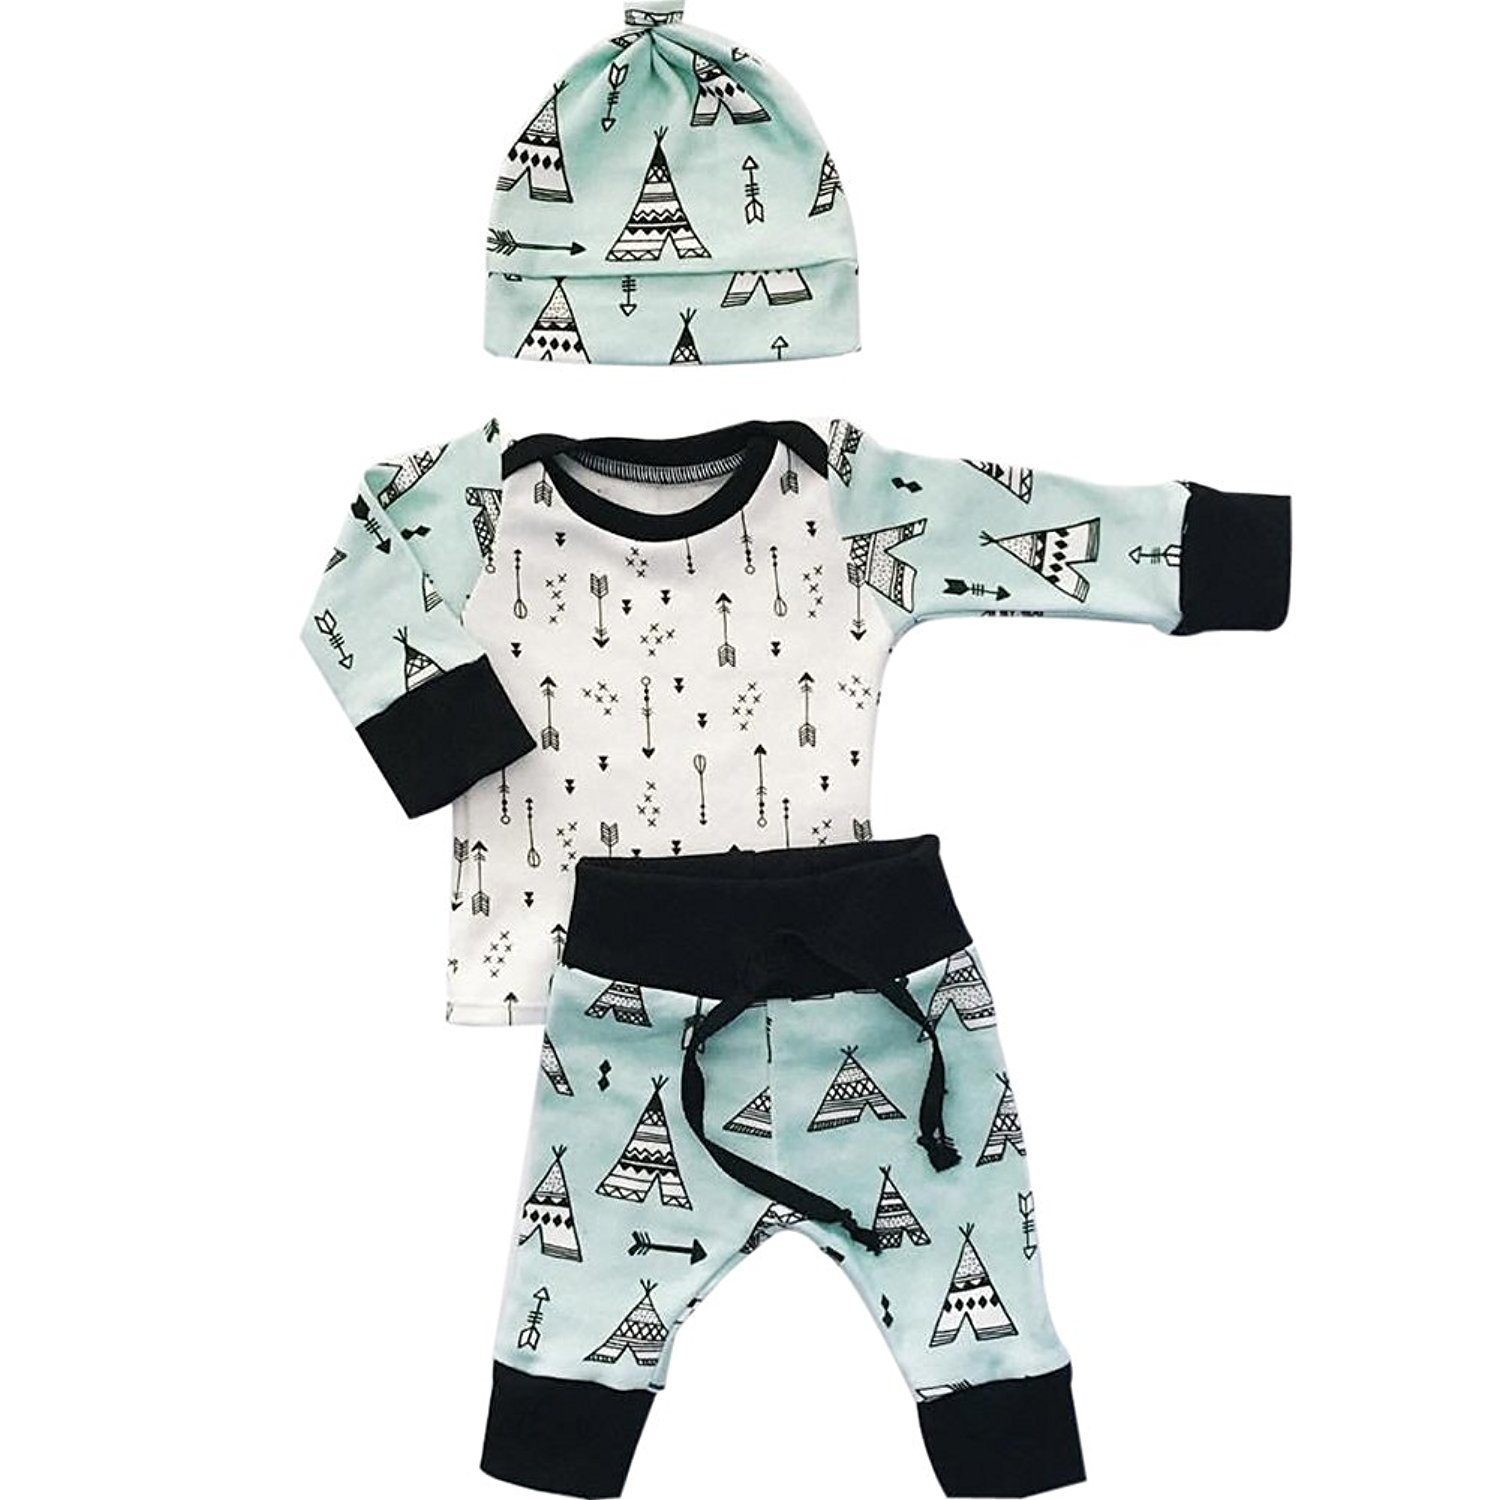 Newborn Baby Girl Boy Outfits, Arrow Tops T shirts+Tent Leggings Pants with Hat